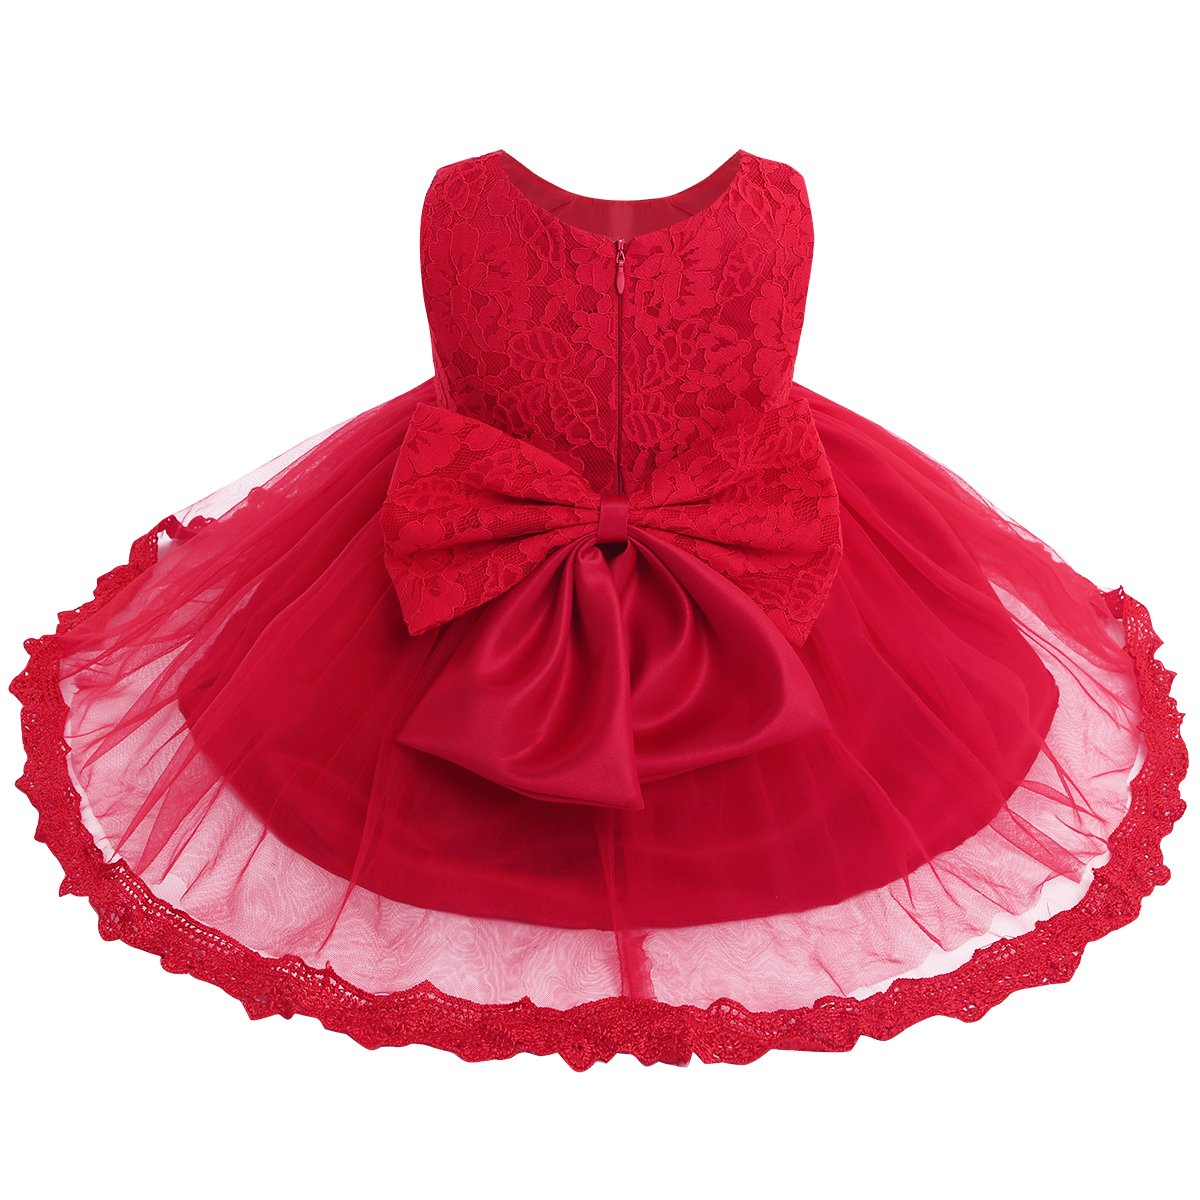 TiaoBug Baby Girls Flower Wedding Pageant Princess Bowknot Communion Party Dress Red(Lace) 6-9 Months